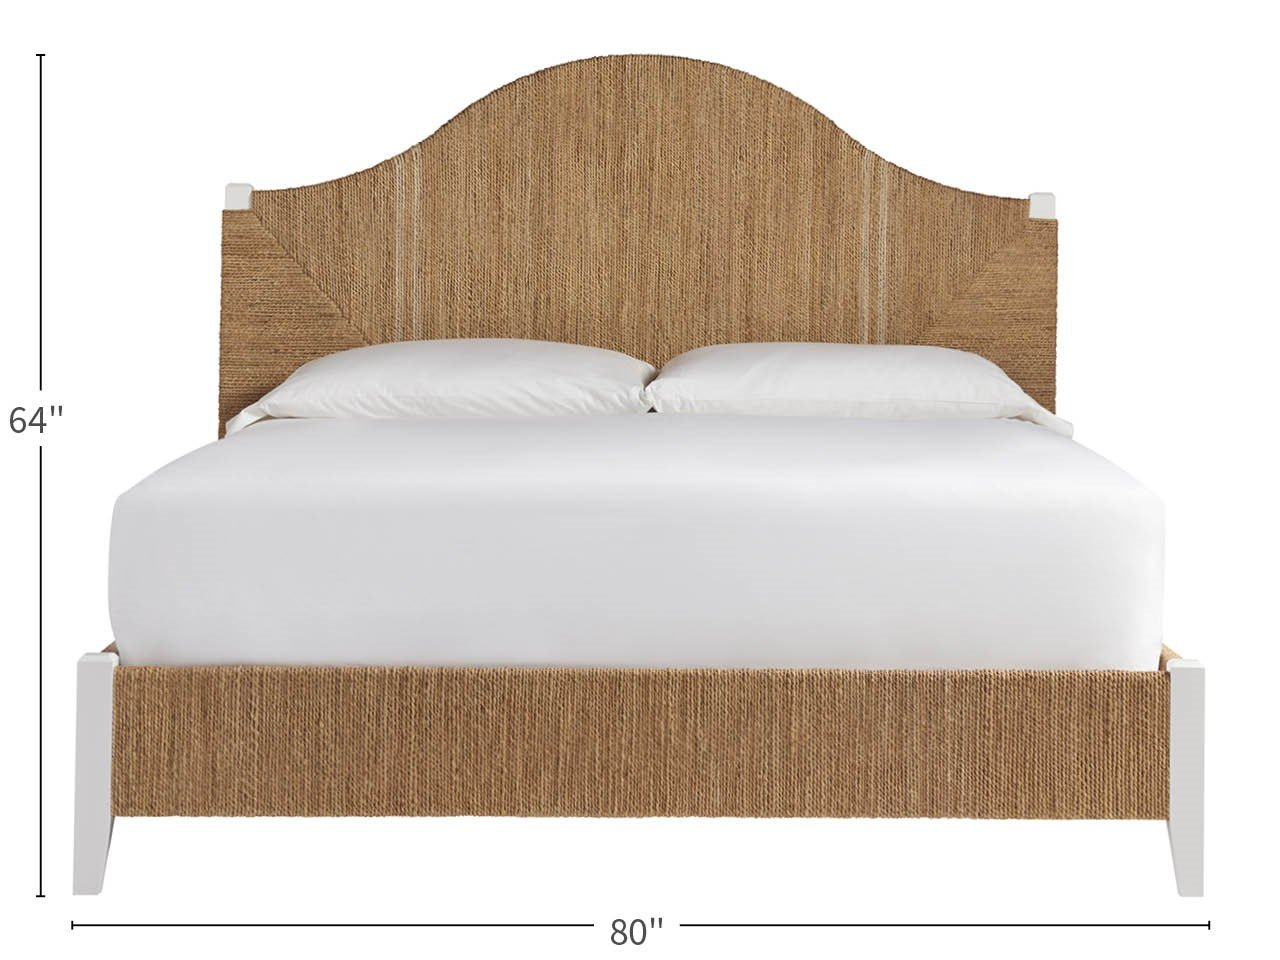 Seabrook King Bed